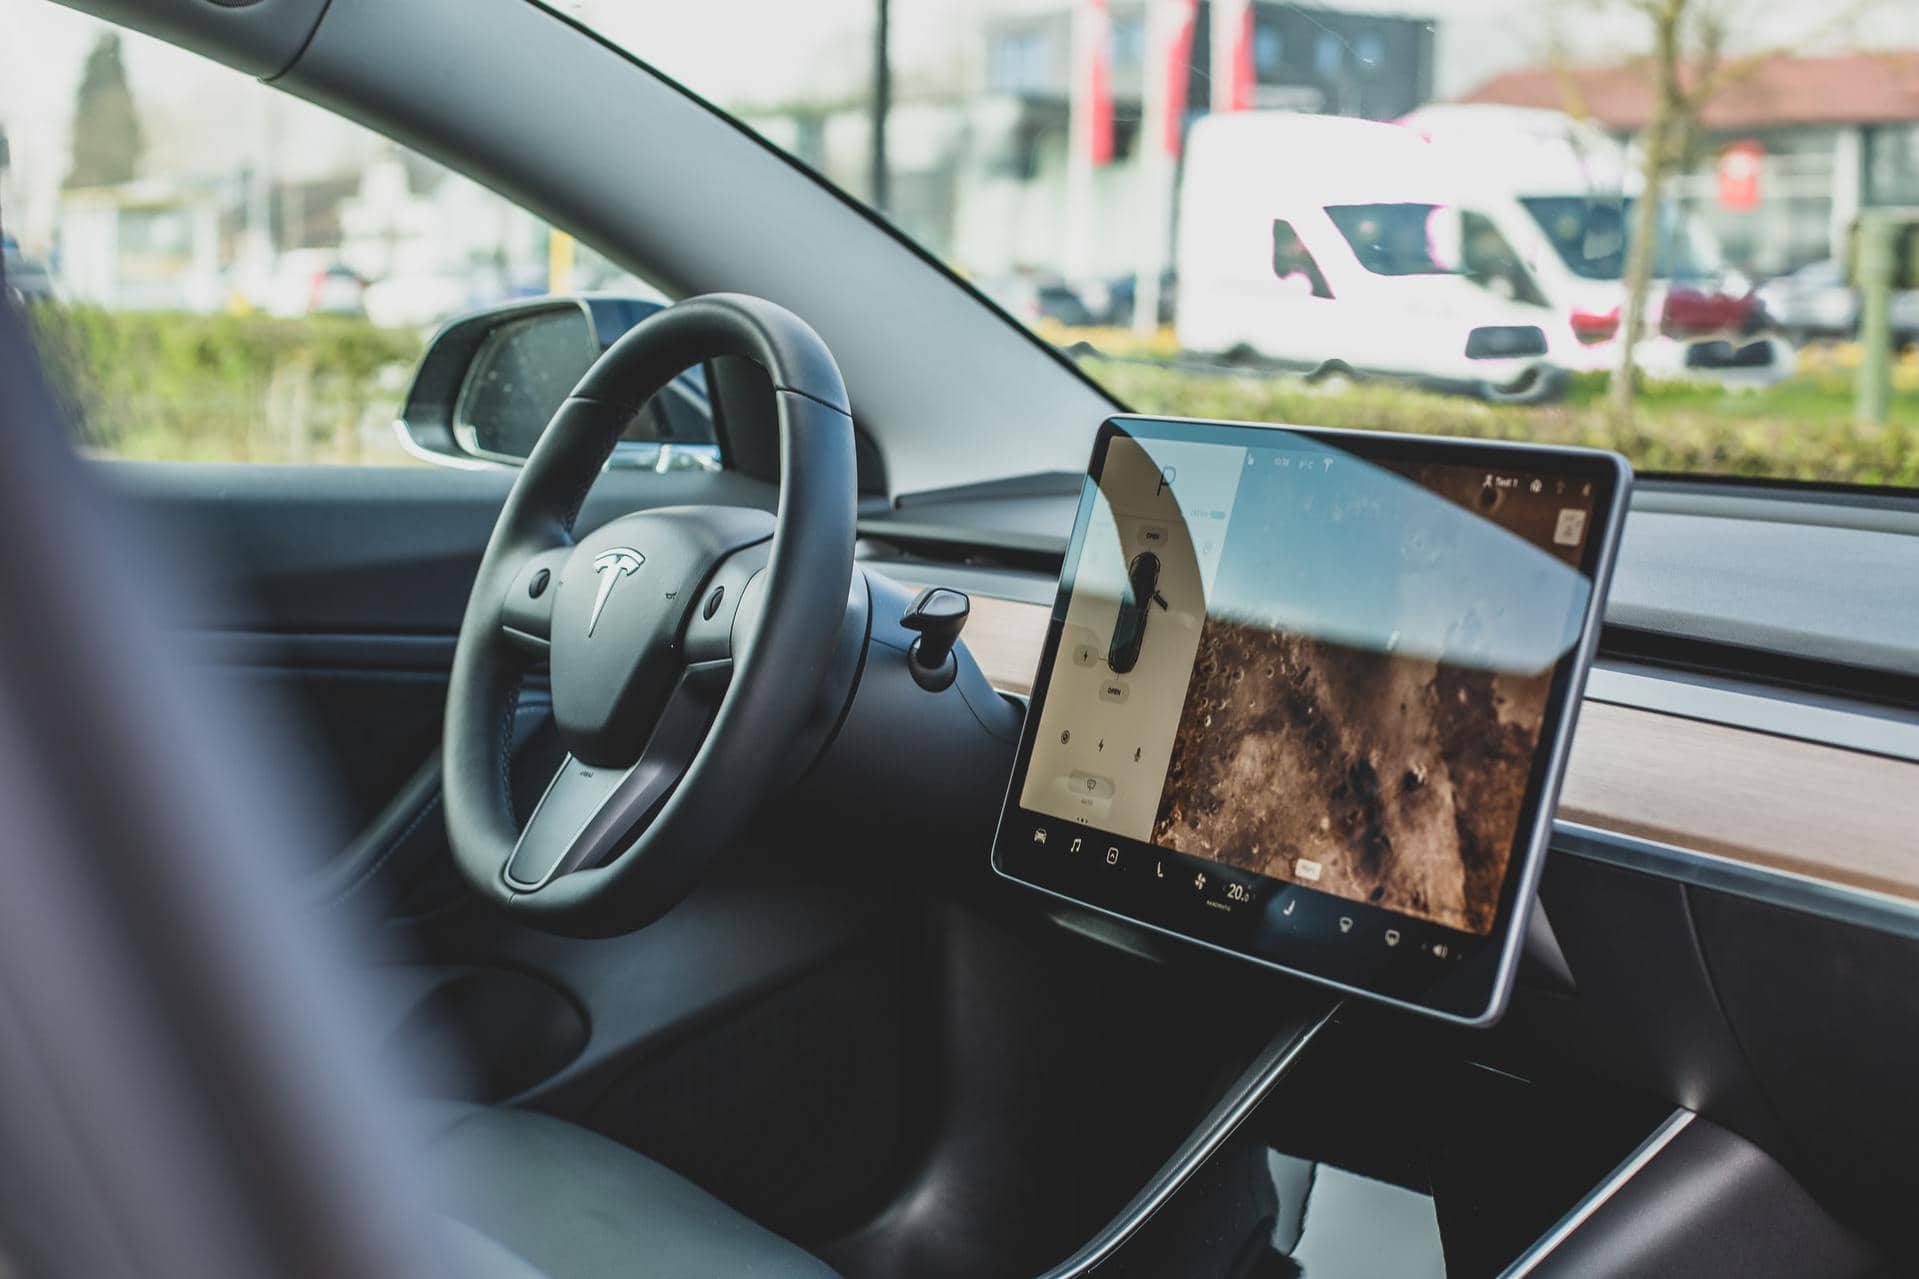 Tesla Self-Drive beta software is out: You should see a button soon